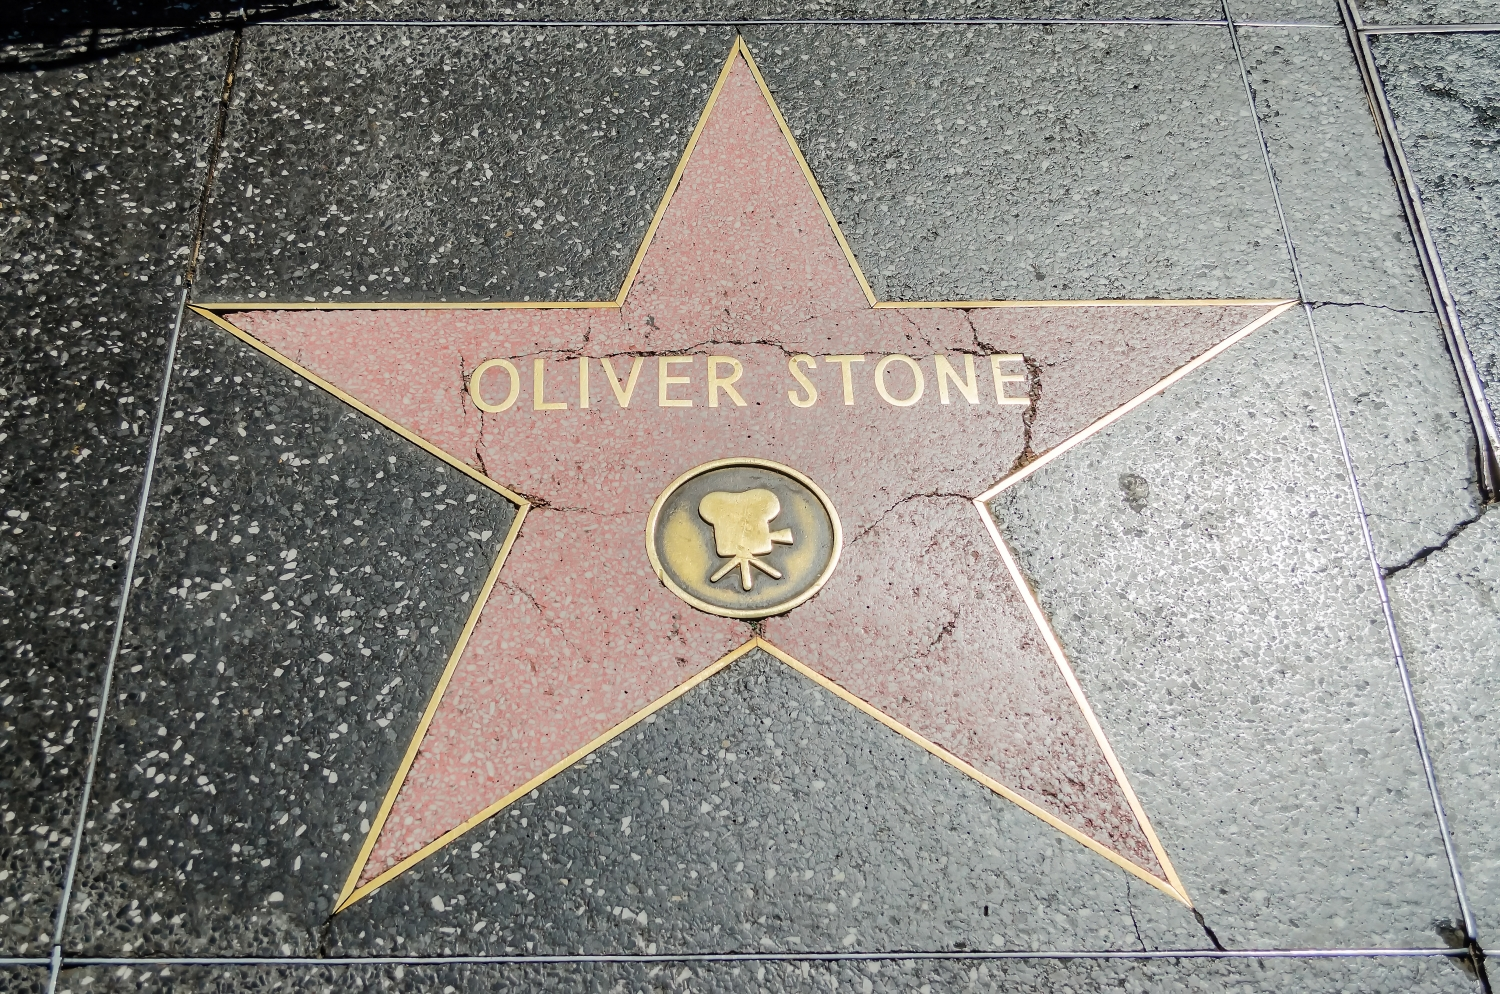 Oliver Stone's star on Hollywood Walk of Fame